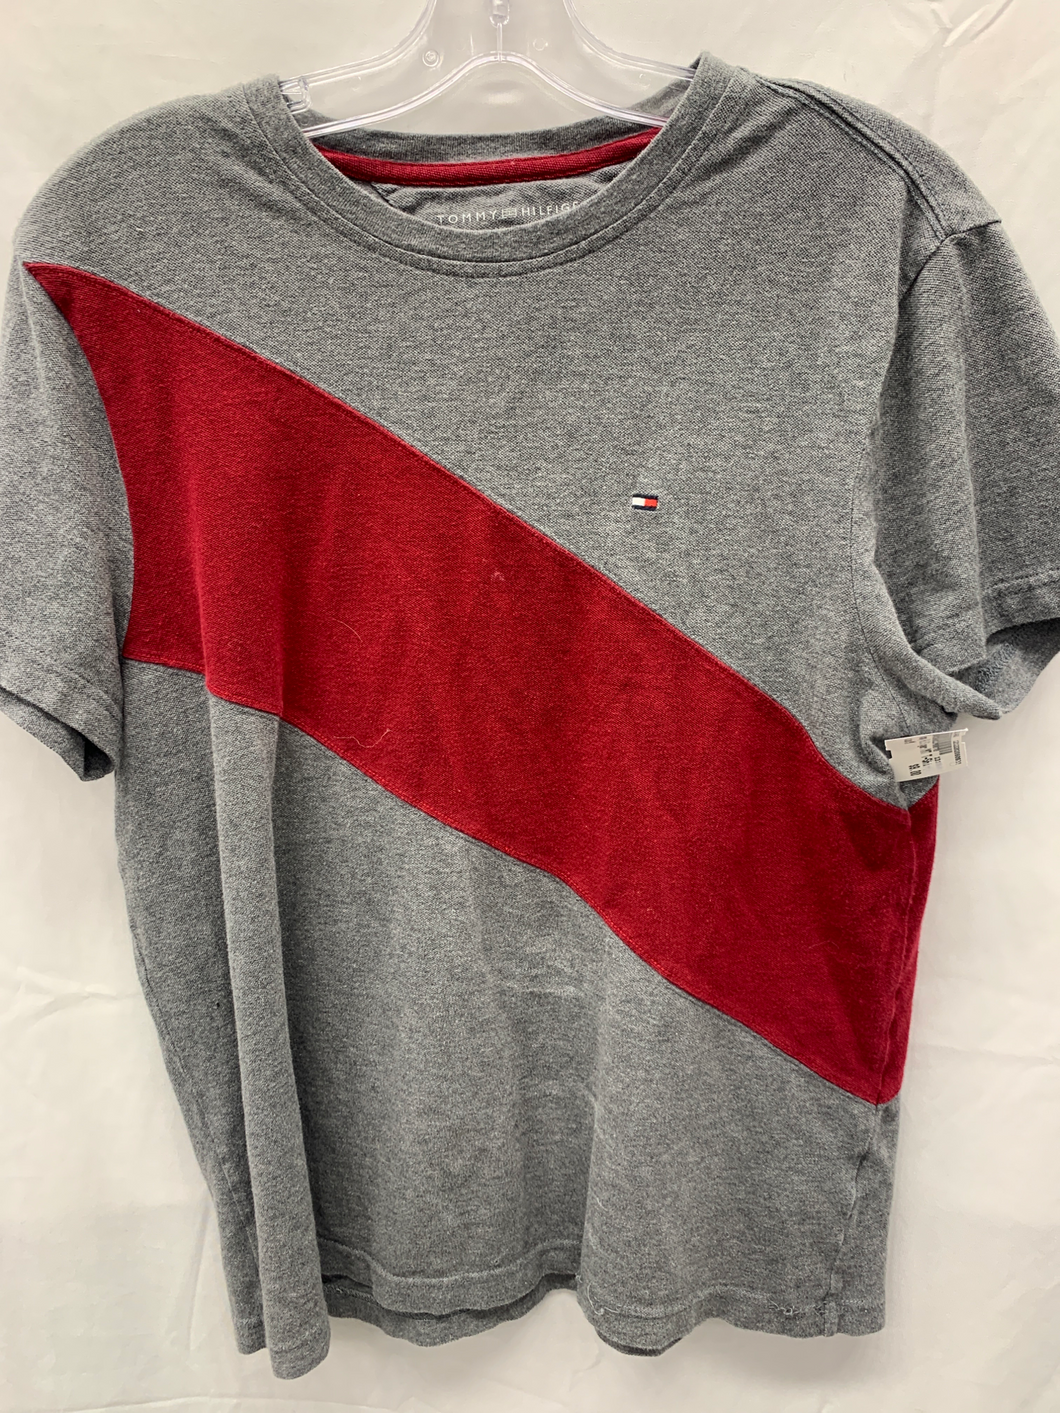 Tommy Hilfiger T-shirt Size Medium